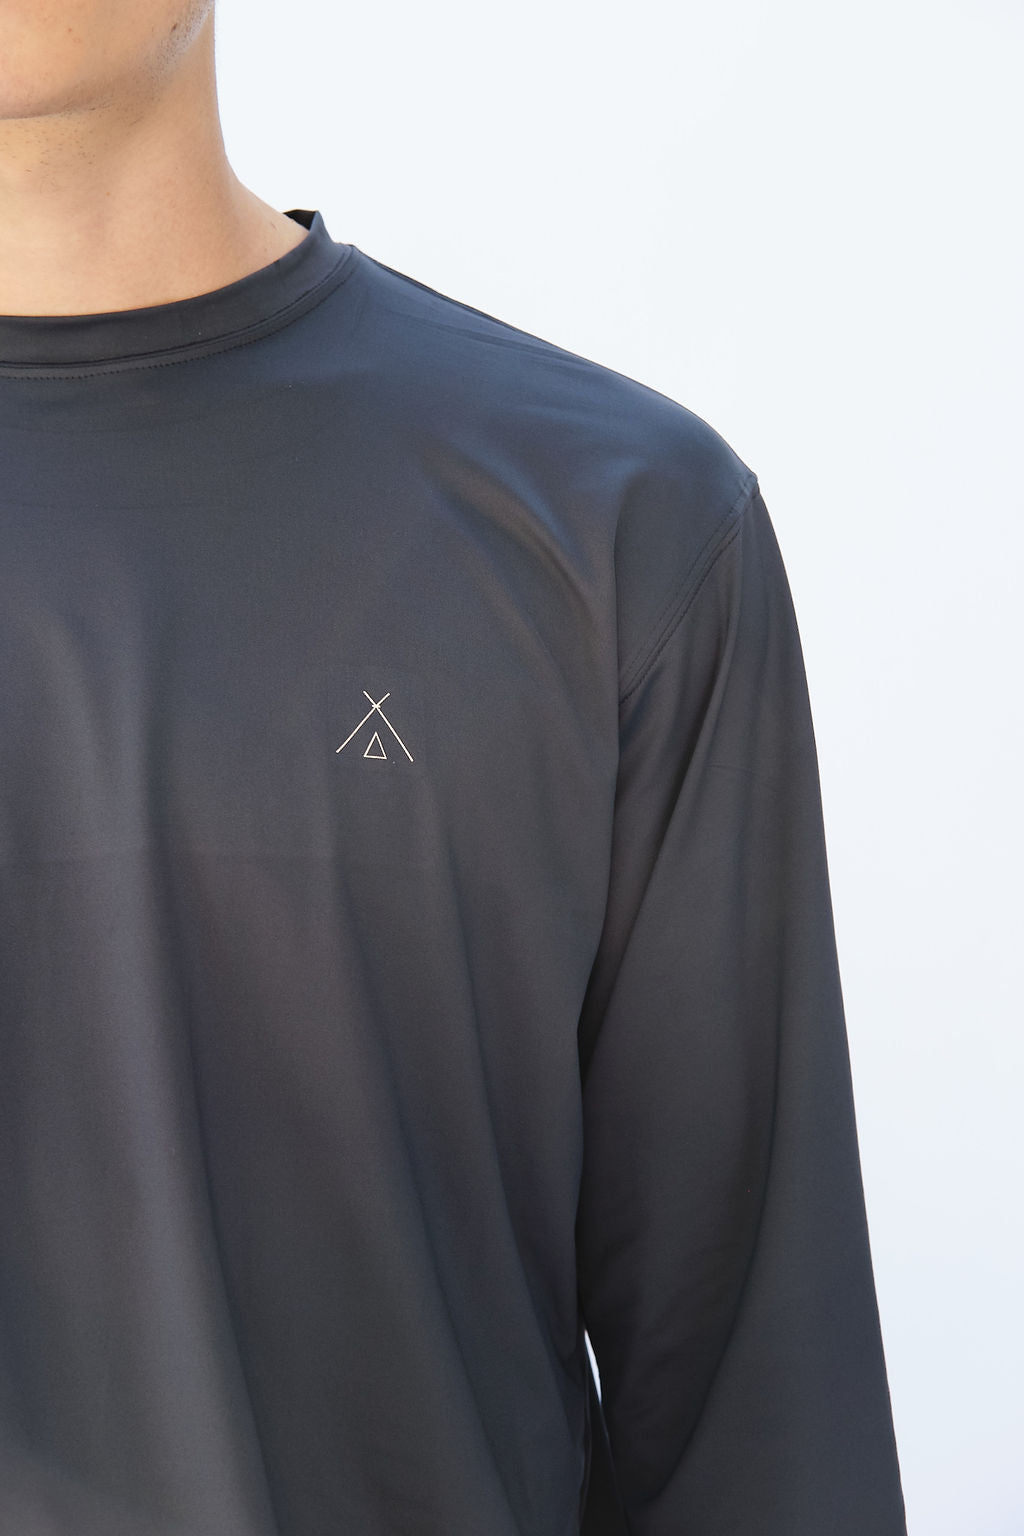 UV Long Sleeve Shirt